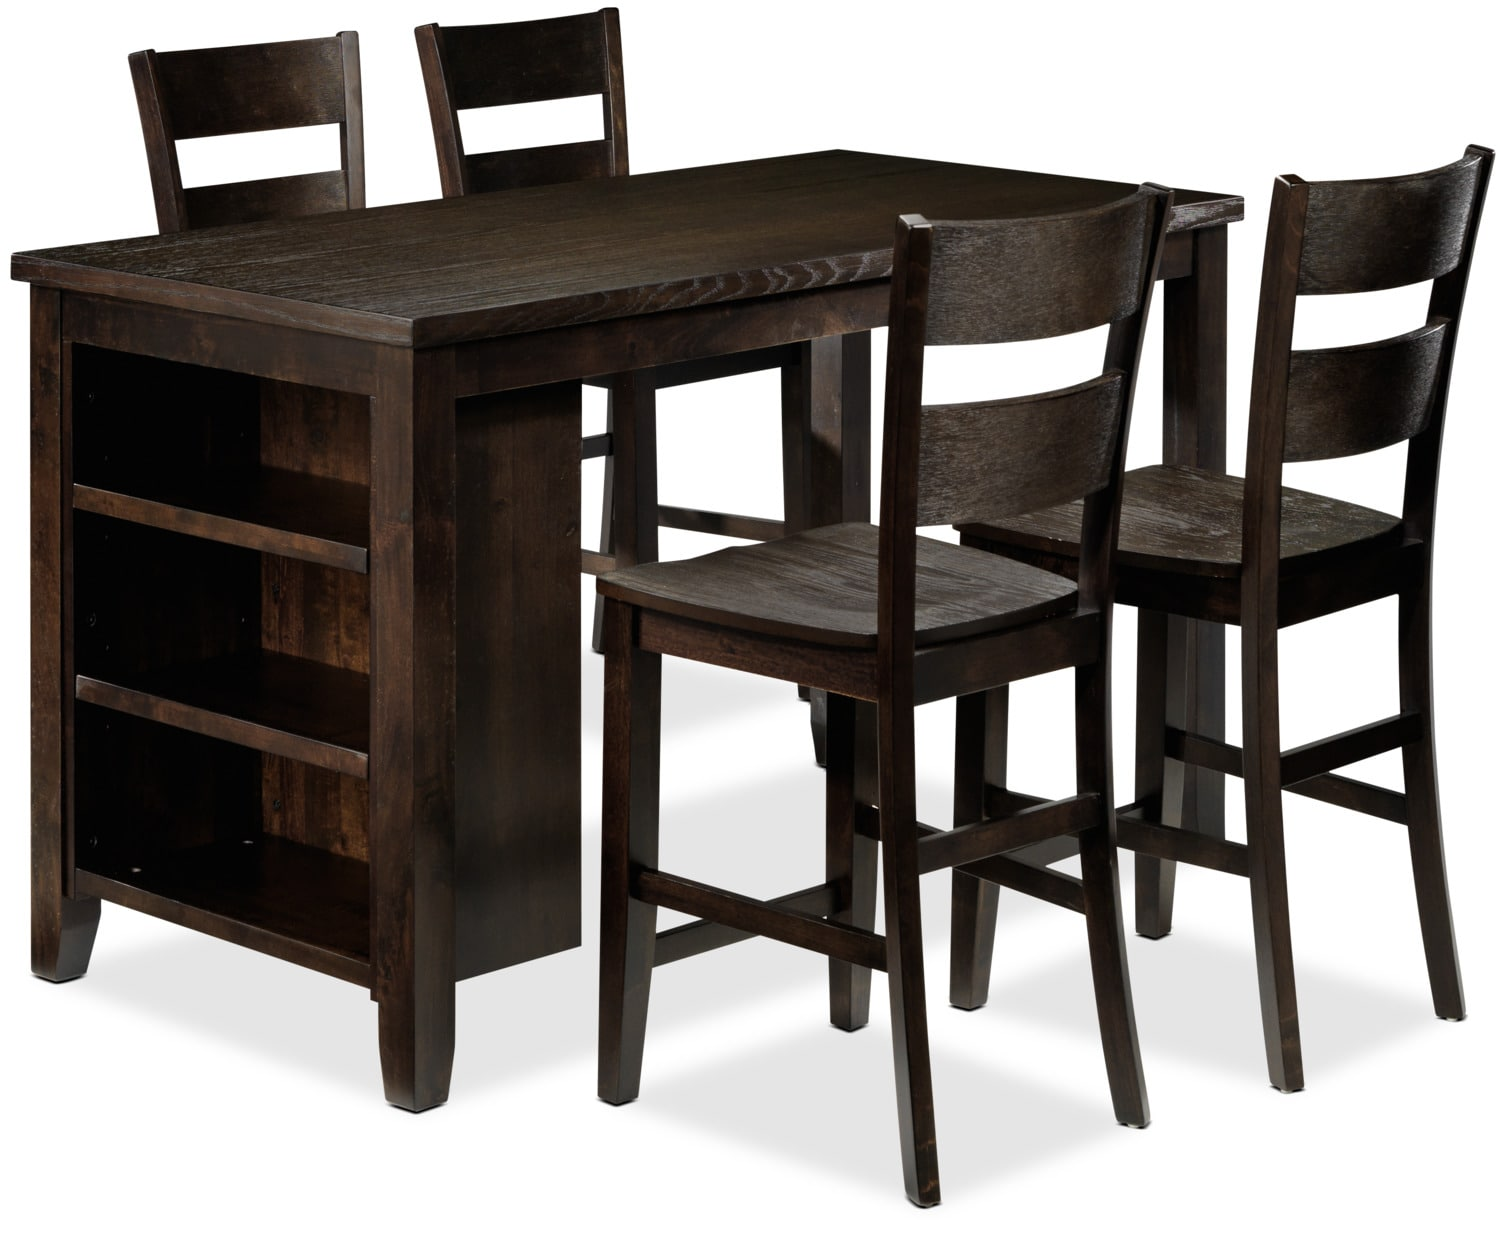 Jerry 5-Piece Pub-Height Kitchen Island Set - Rustic Brown